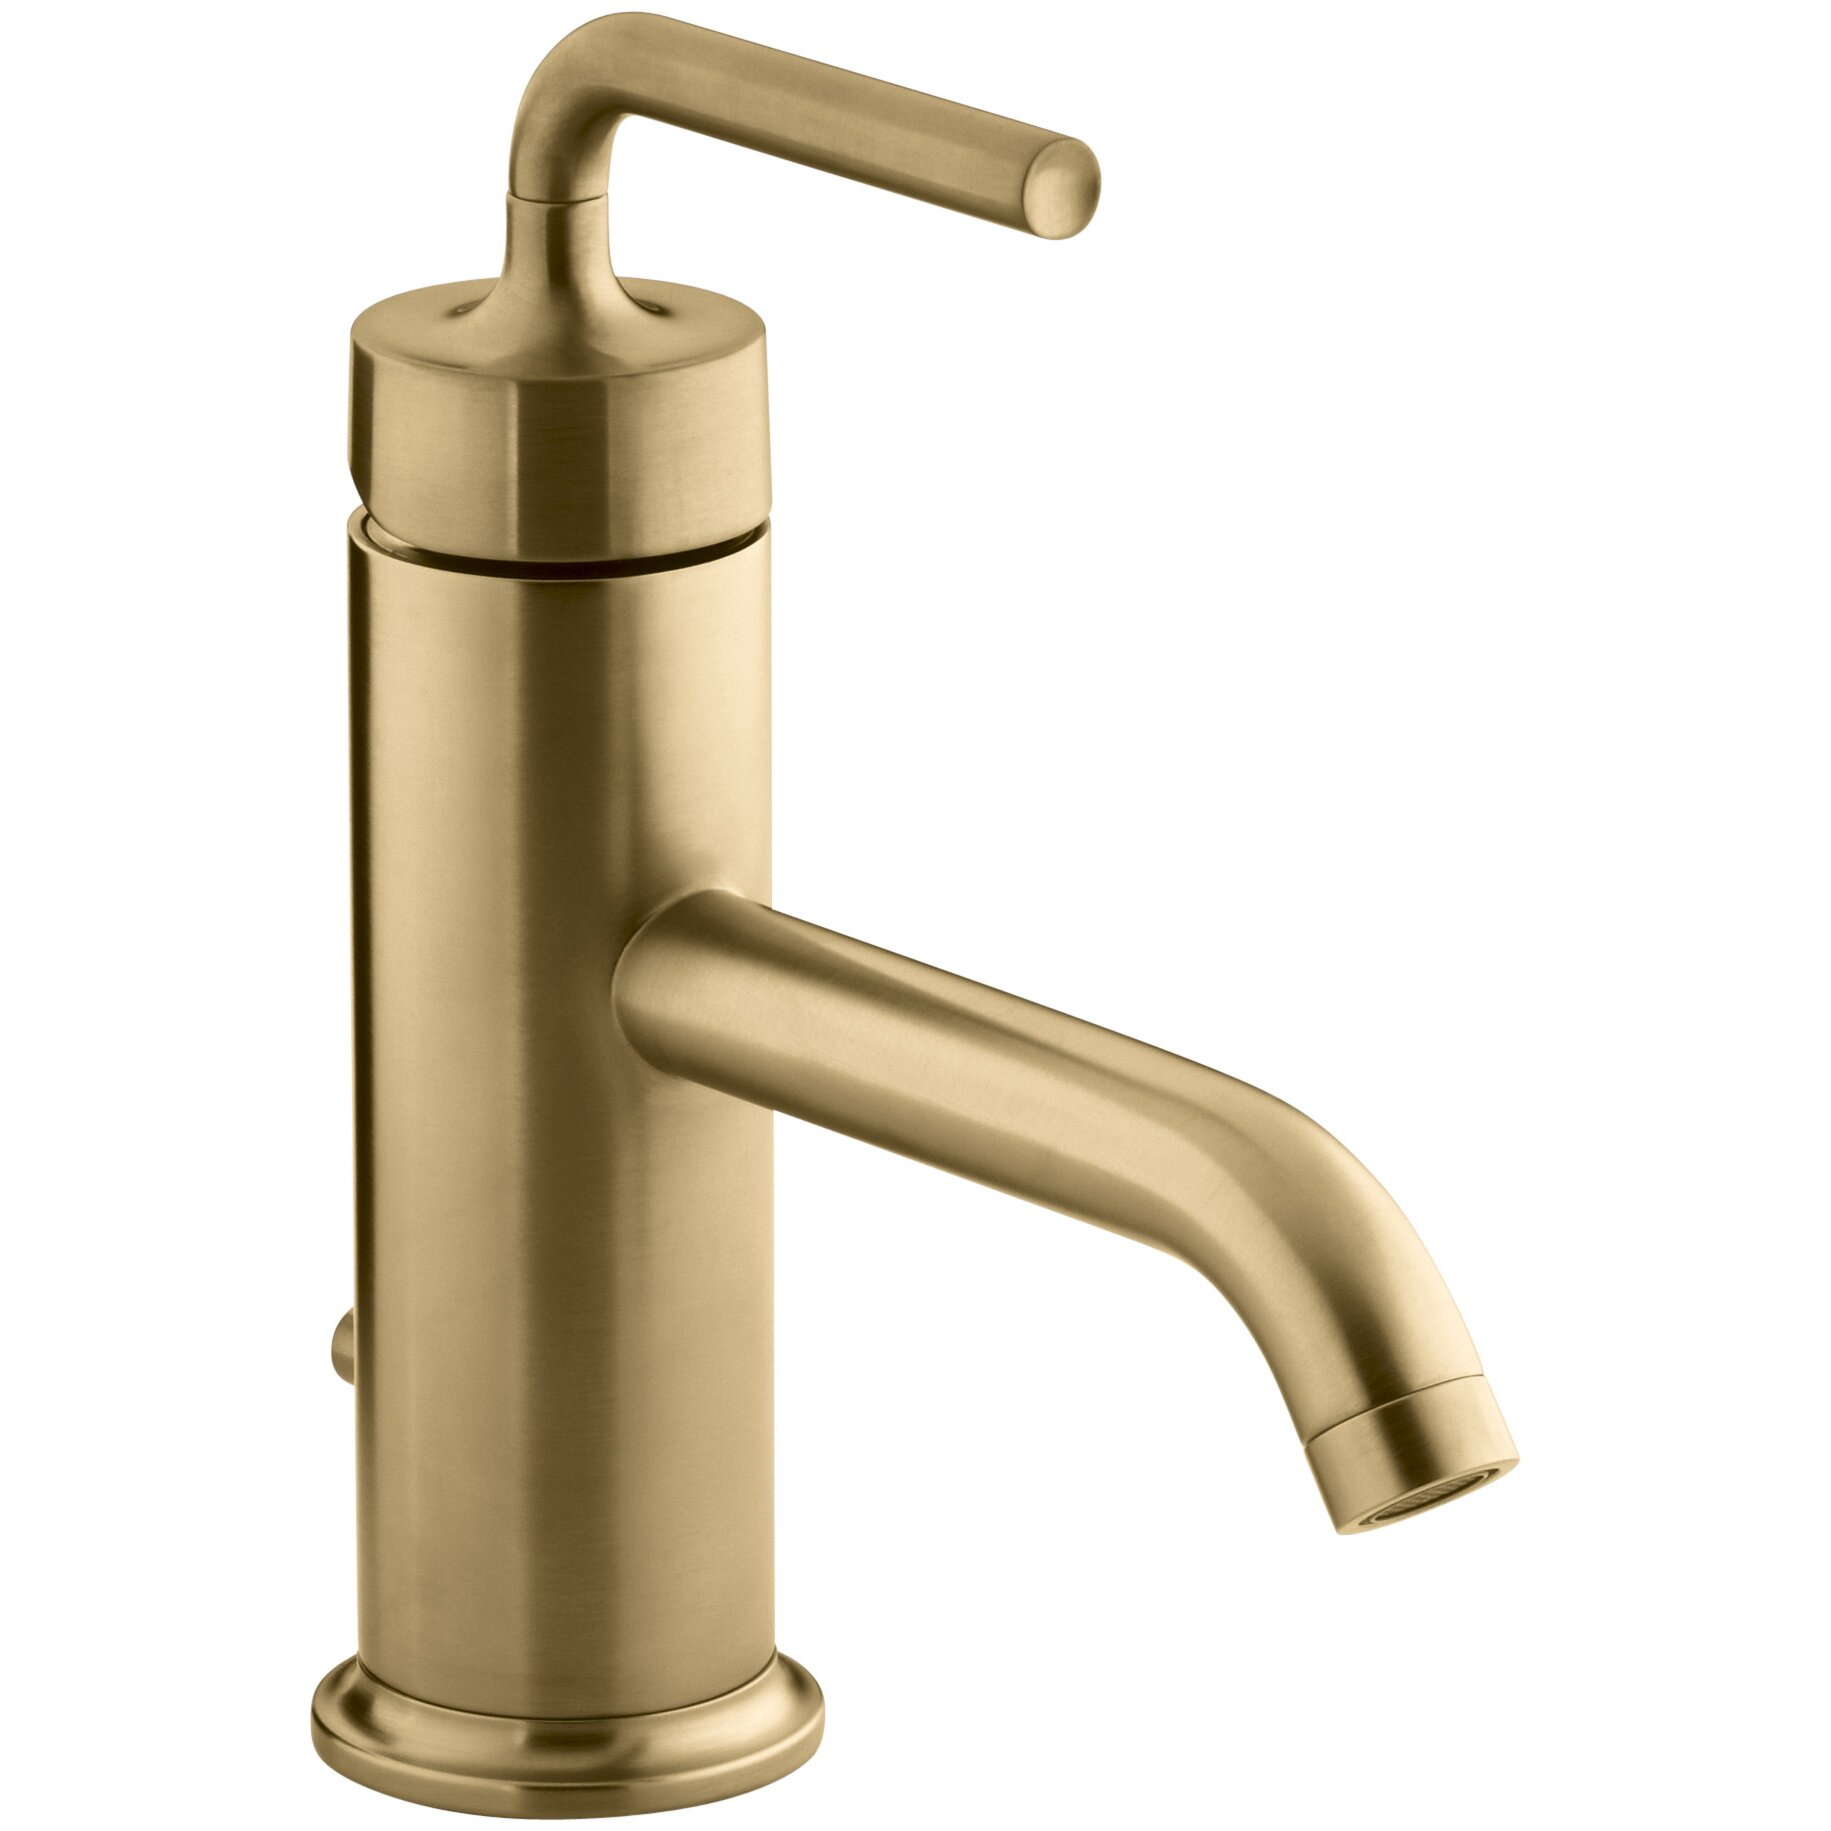 Kohler Purist Single Hole Bathroom Sink Faucet With Straight Lever Handle Reviews Wayfair